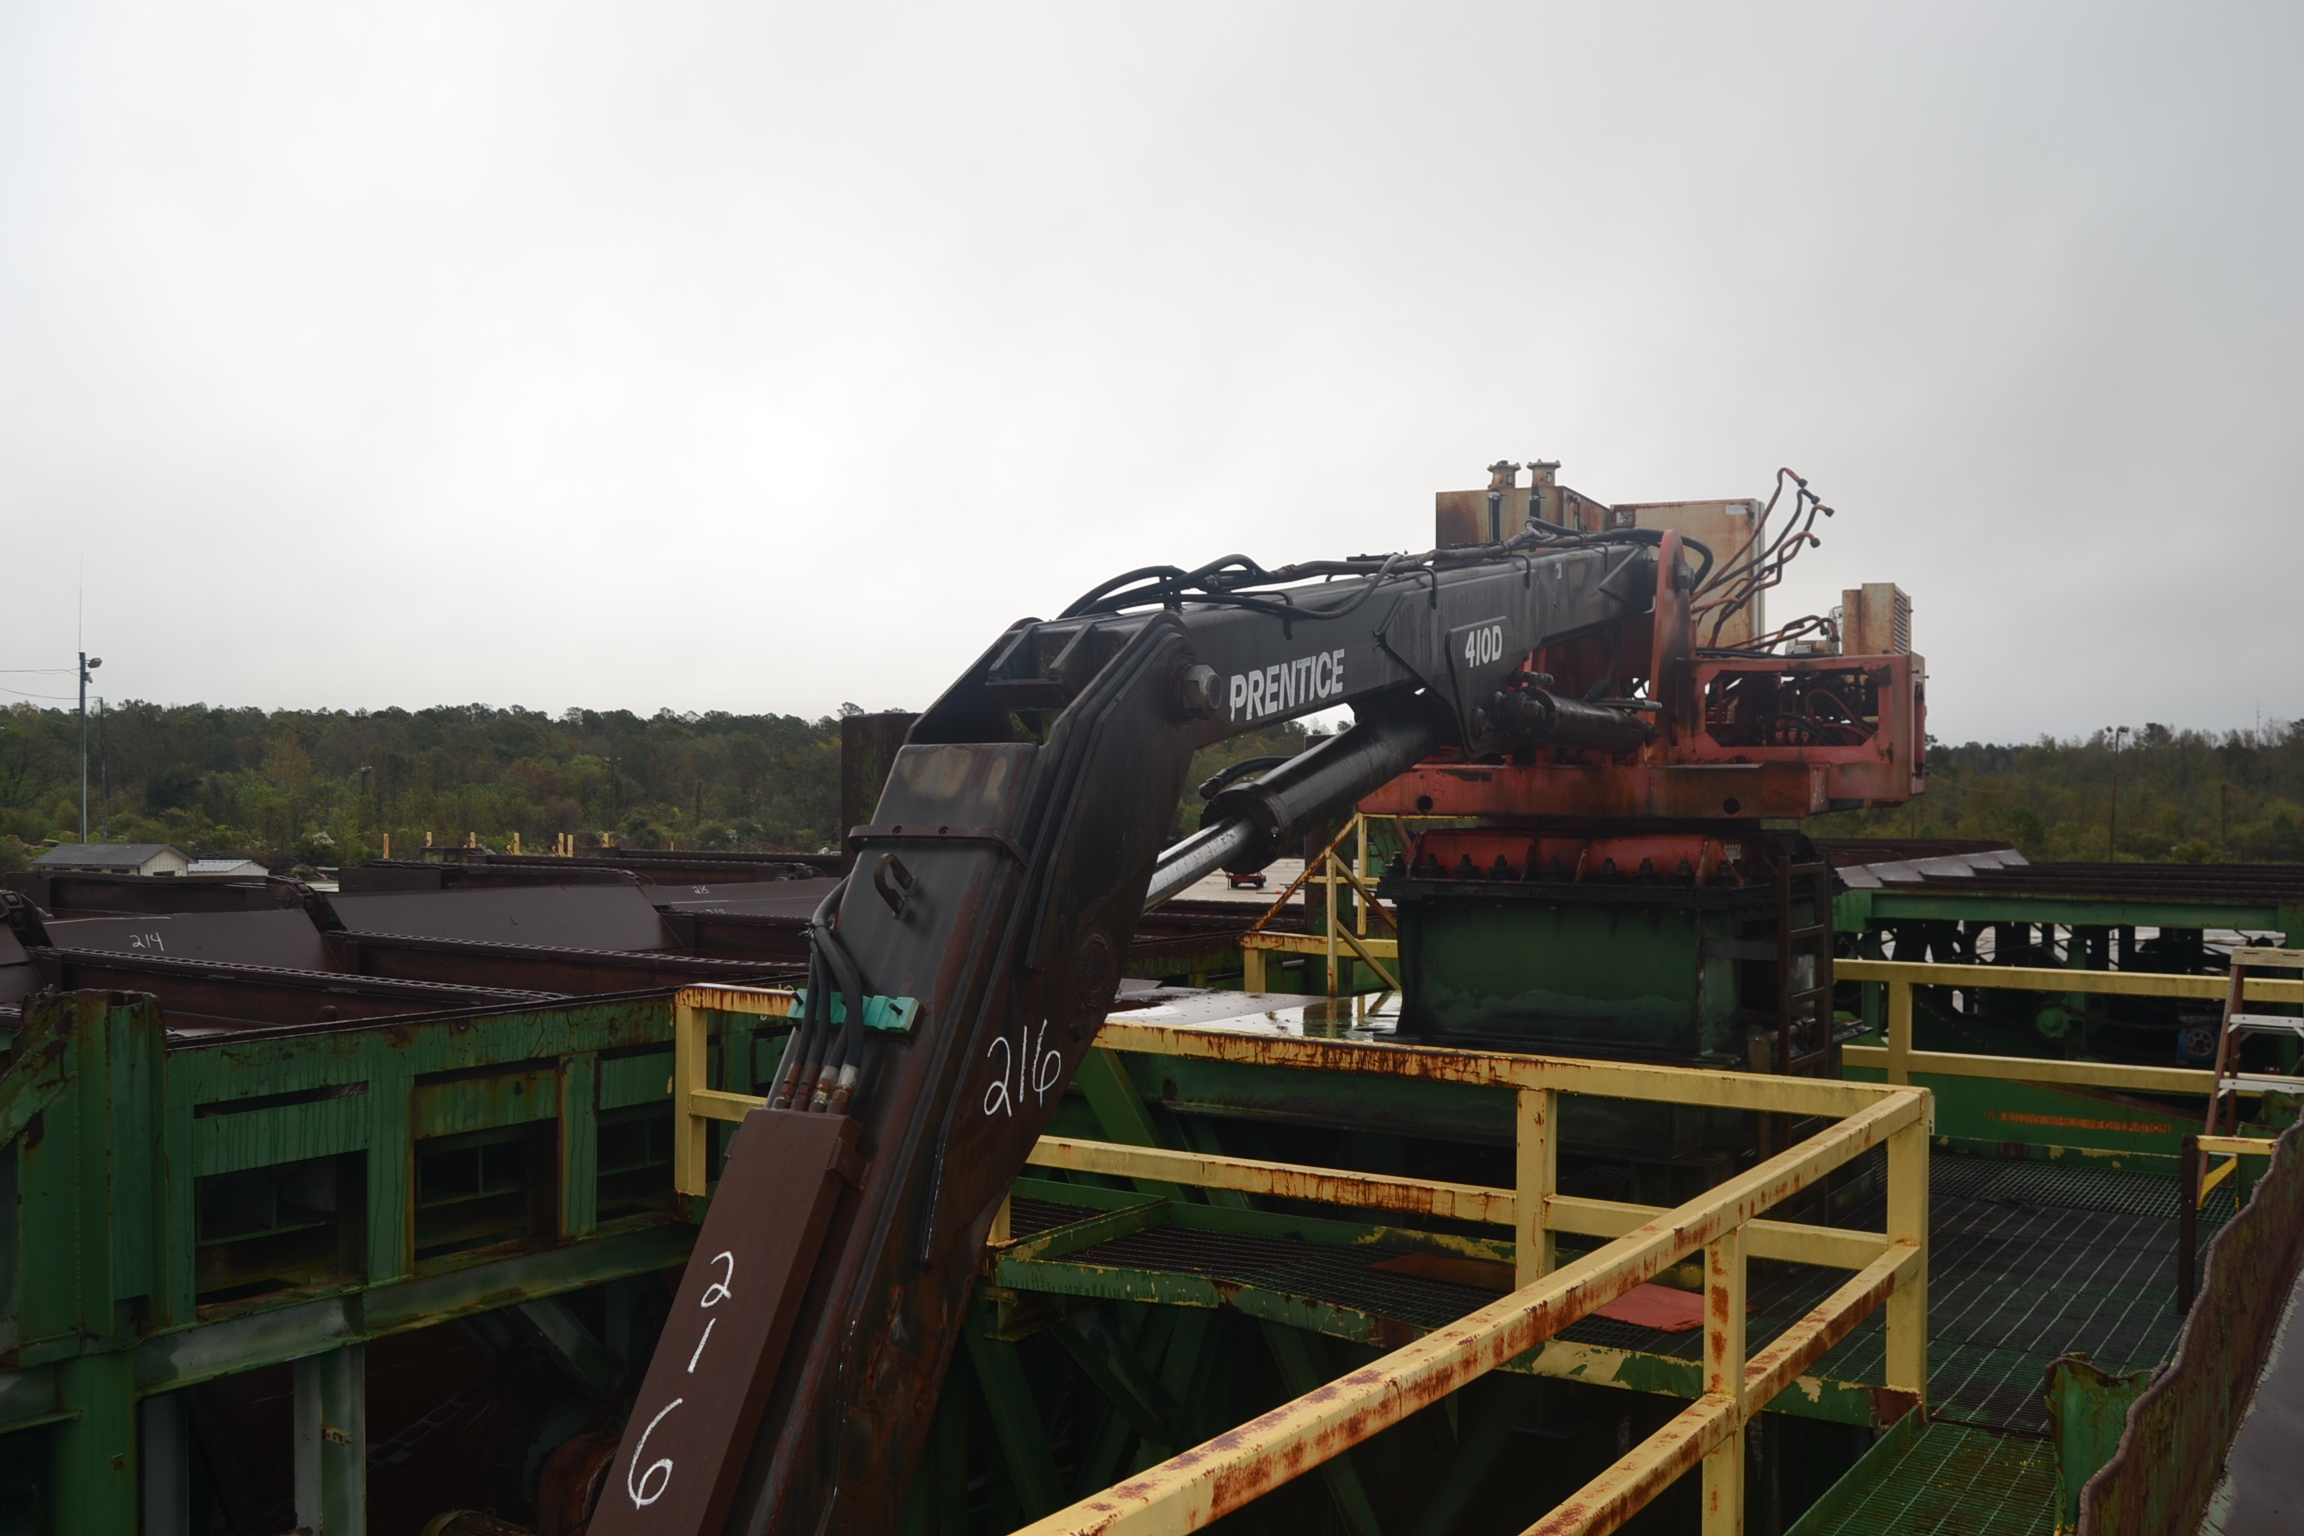 Lot 216 - PRENTICE 410D STATIONARY KNUCKLE BOOM LOADER W/CONT. GRAPPLE; W/75 HP MOTOR & CONTROLS